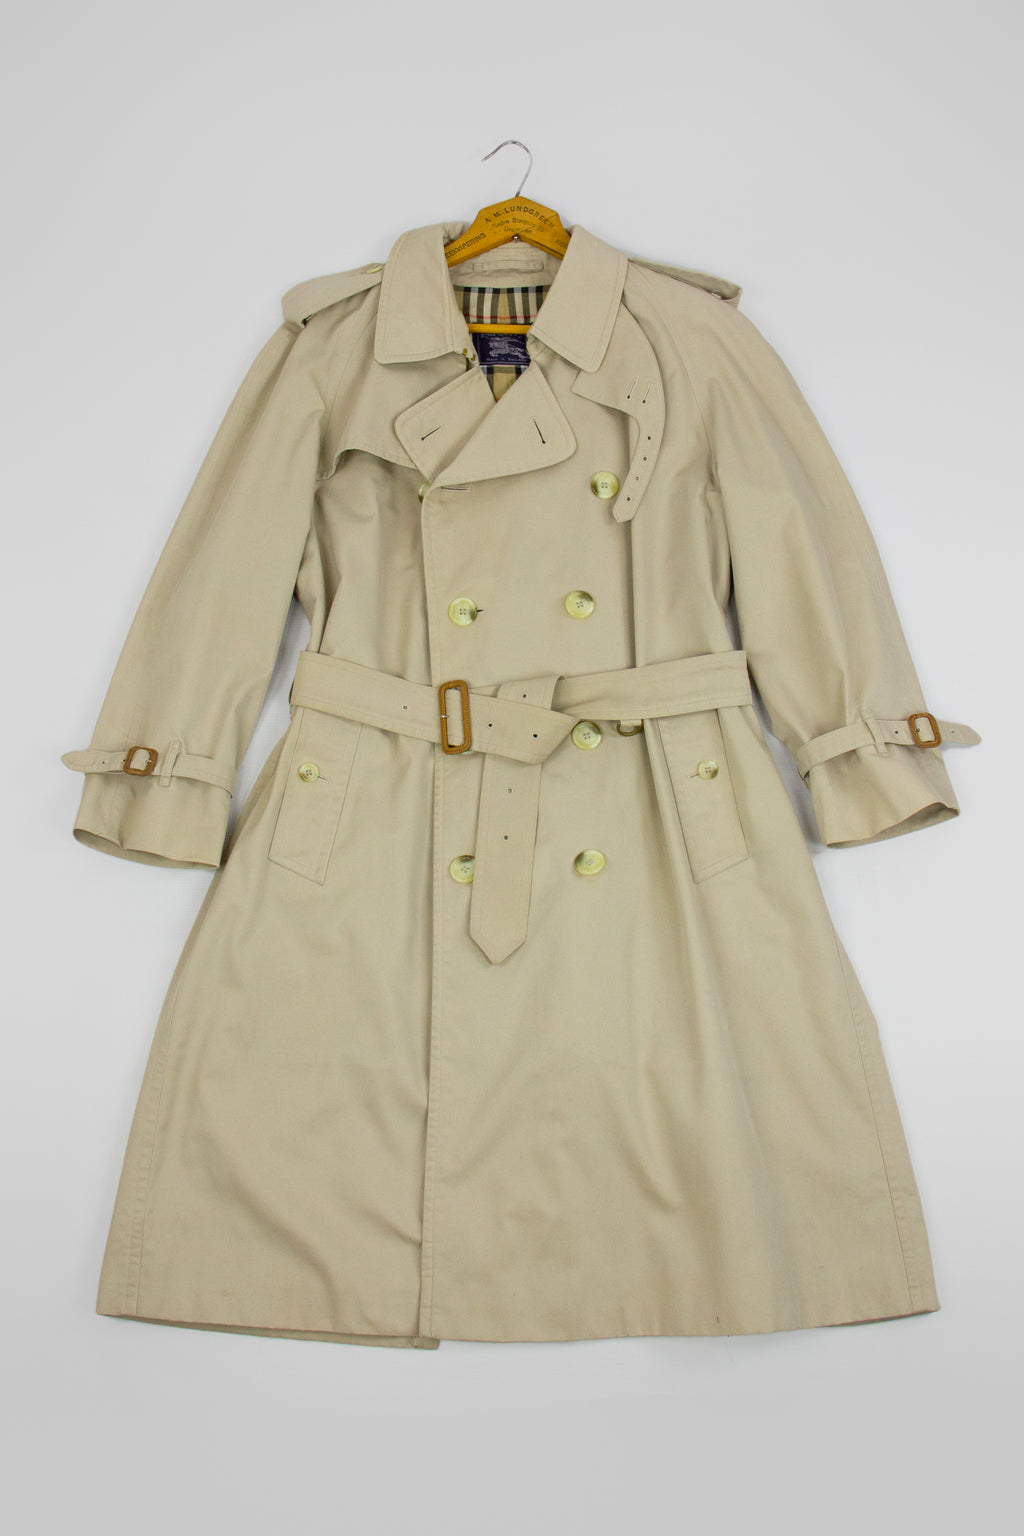 Burberry Vintage Men's Khaki Brown Trench Coat Size 38S - secondfirst